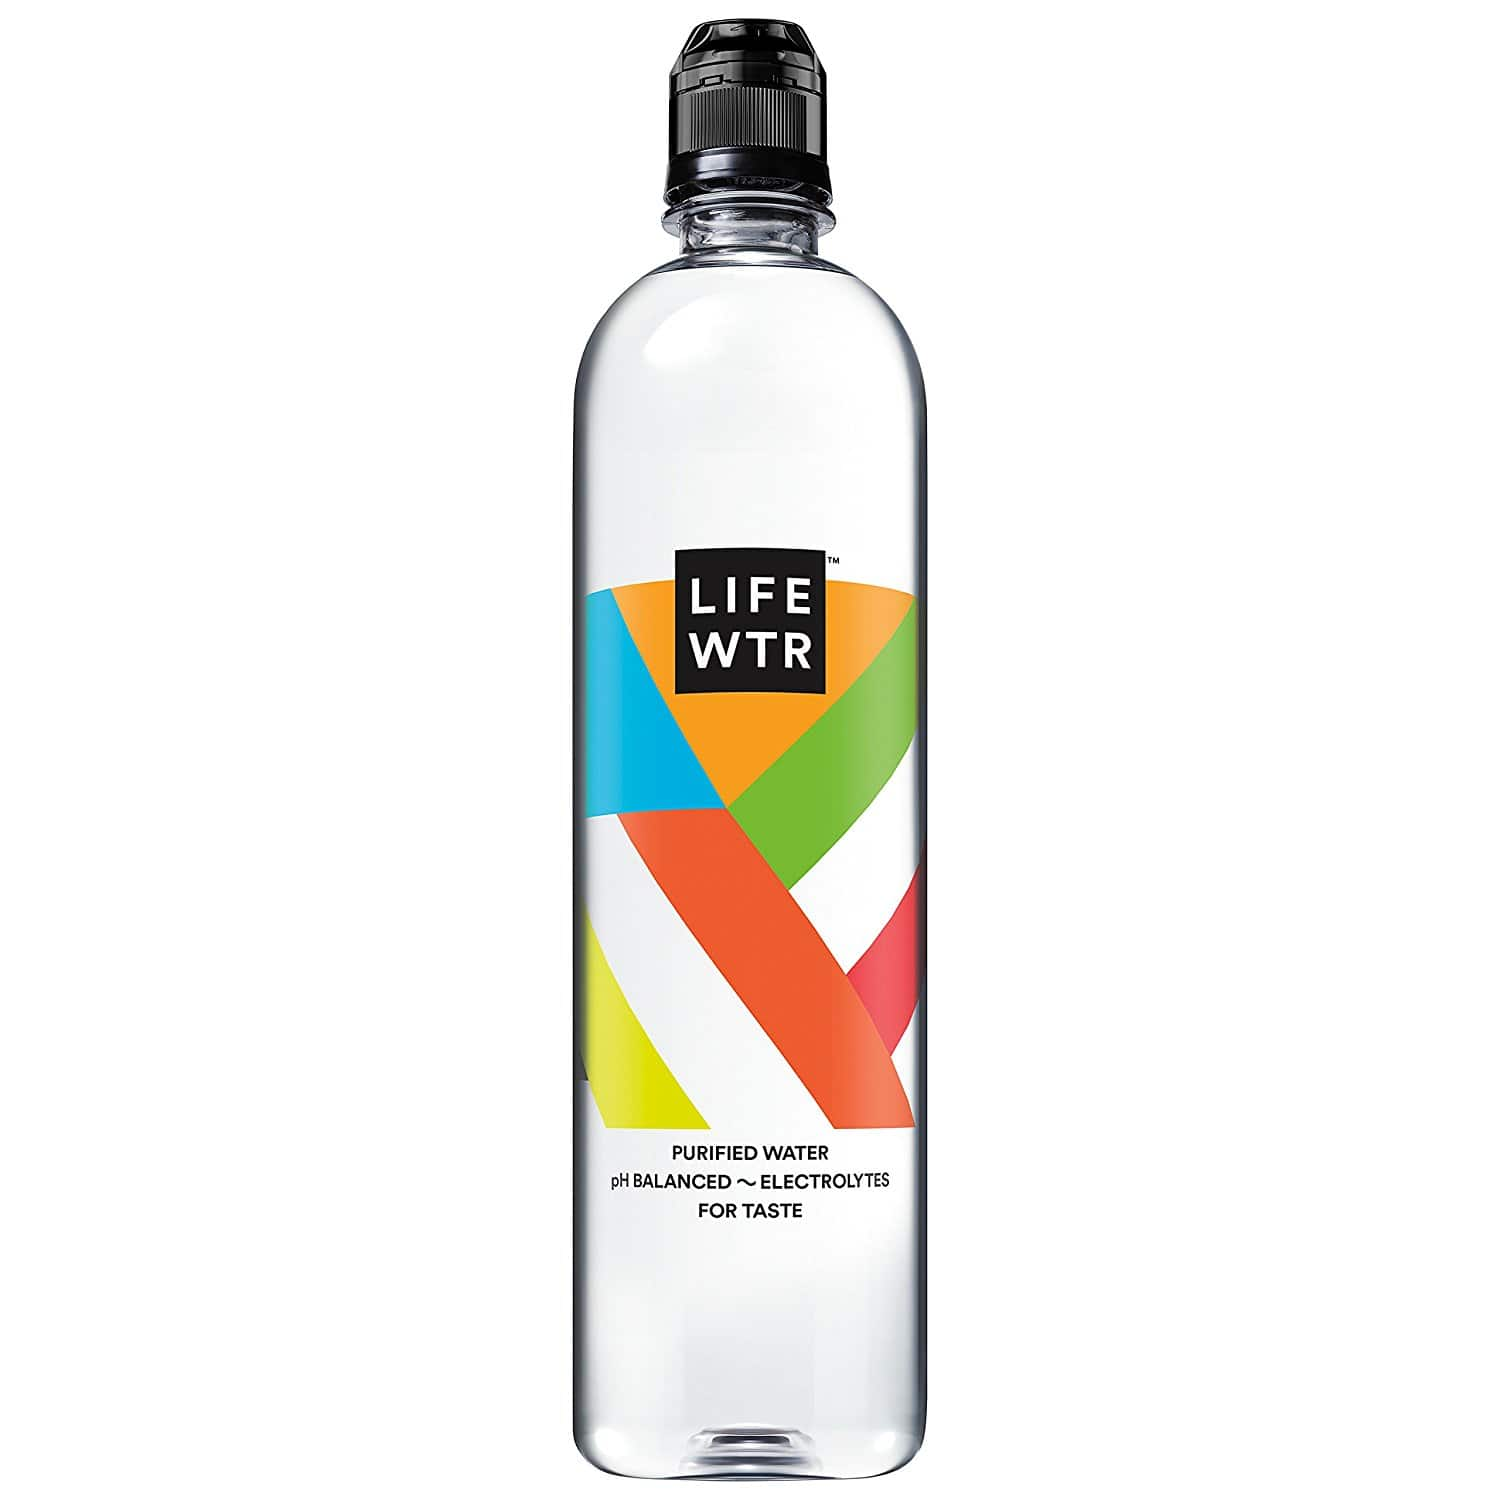 YMMV - Lifewter 700ml - 3 for $00.27 or Free with Prime Now